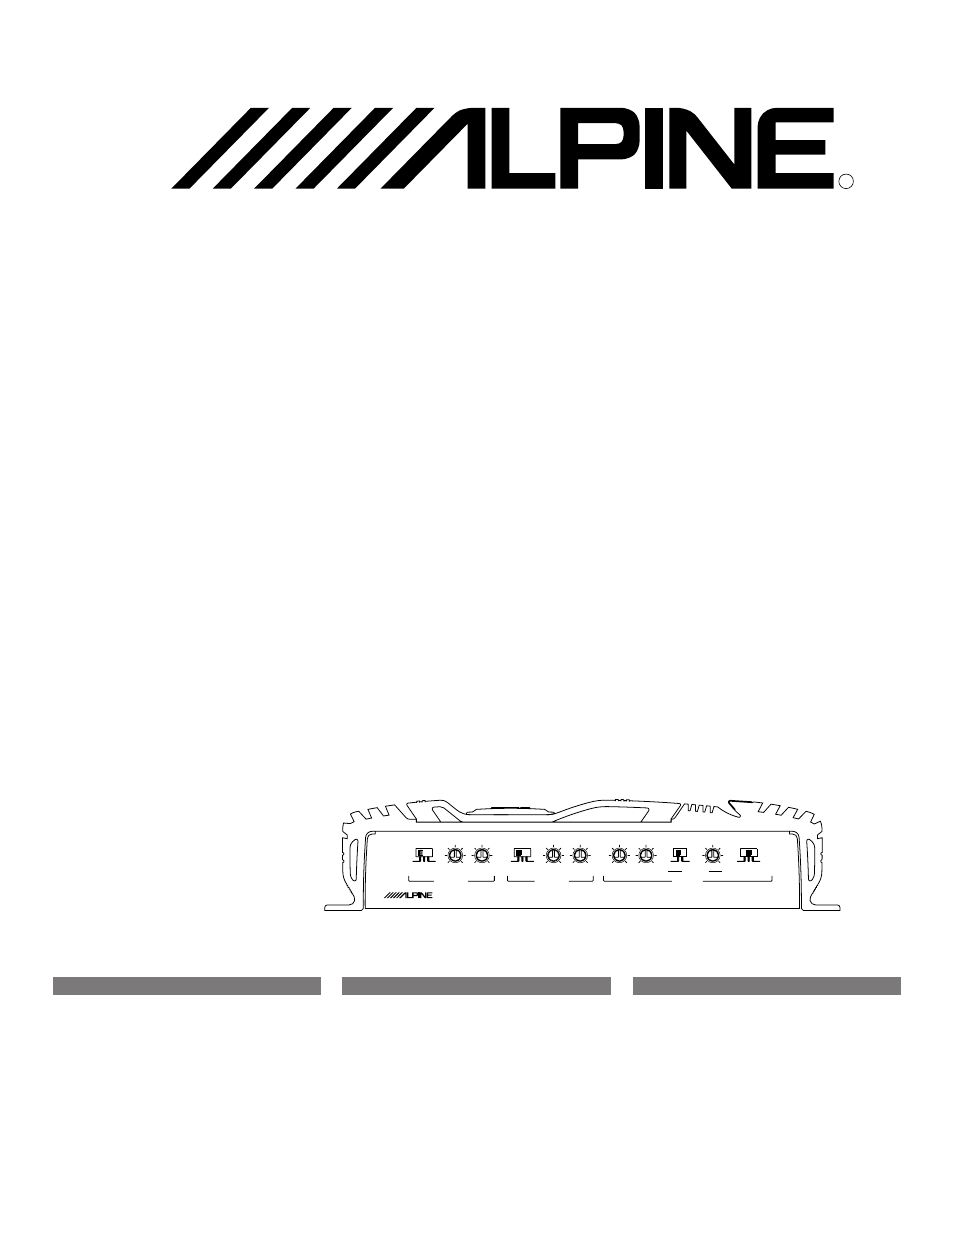 alpine mrv f307 page1 alpine mrv f307 user manual 20 pages also for mrv t407, mrv 30 Amp RV Wiring Diagram at bayanpartner.co